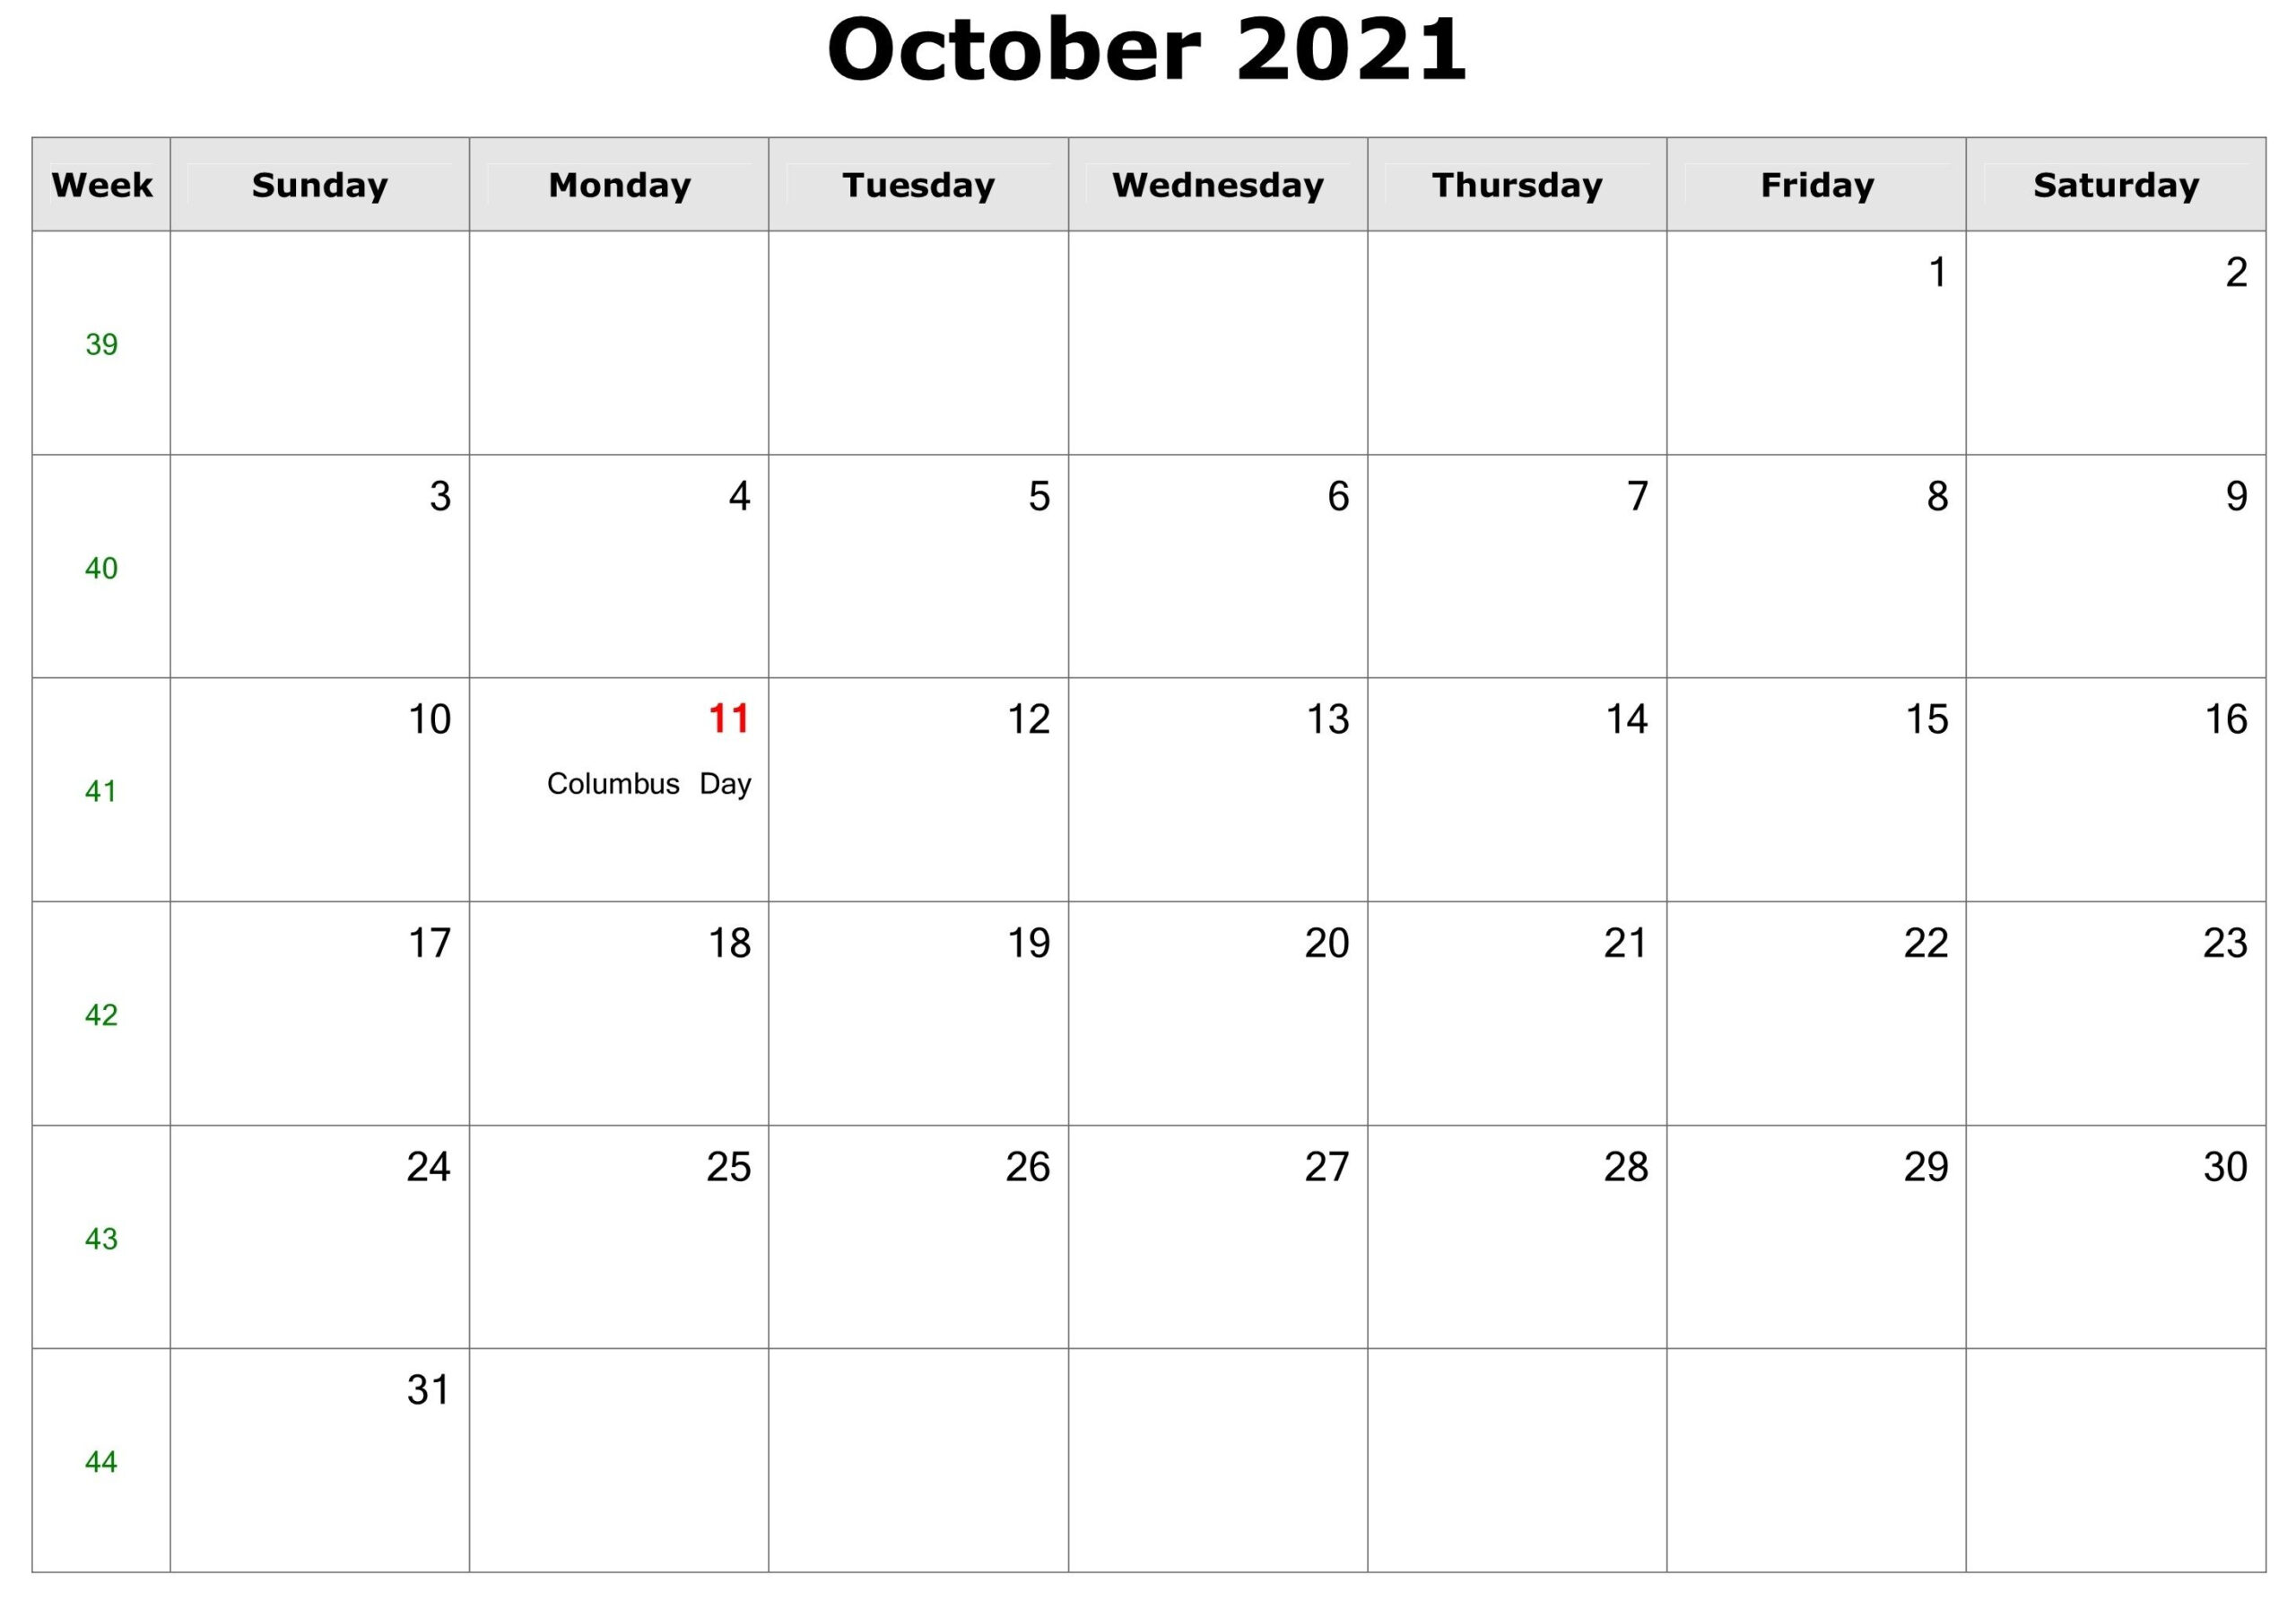 October 2021 Calendar | Free Printable Calendar Templates